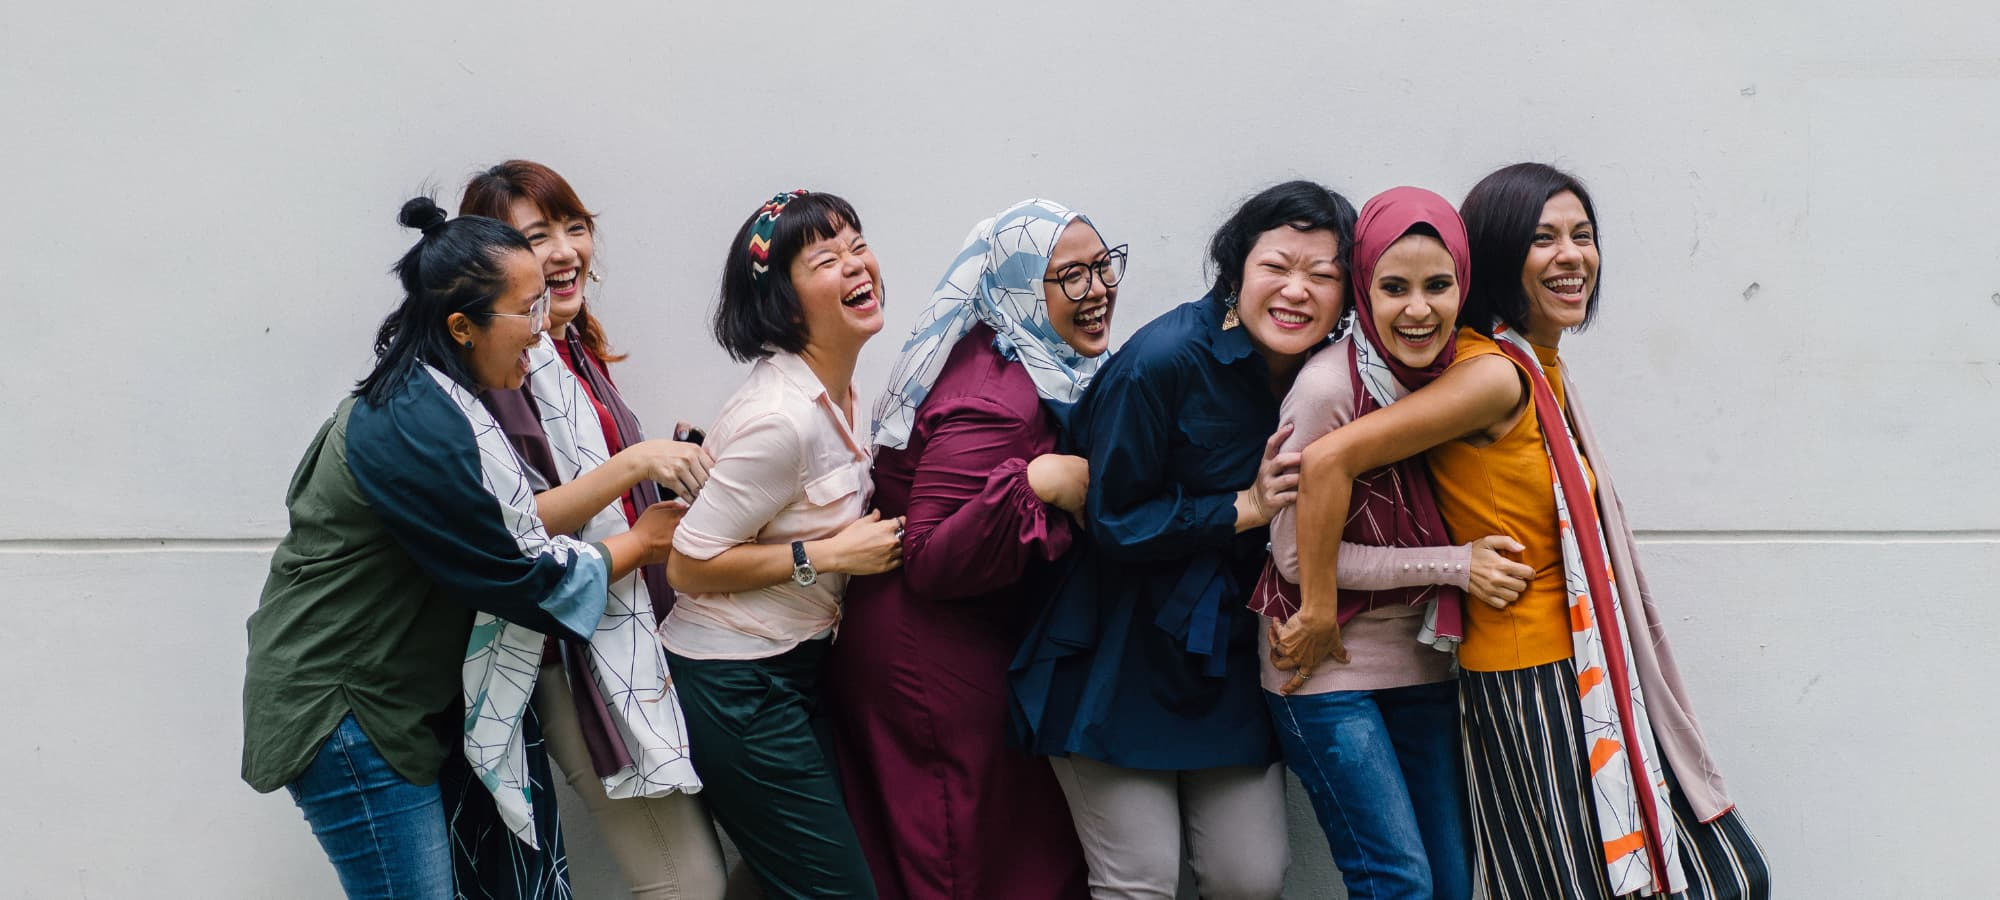 a diverse group of women enjoying each other's company